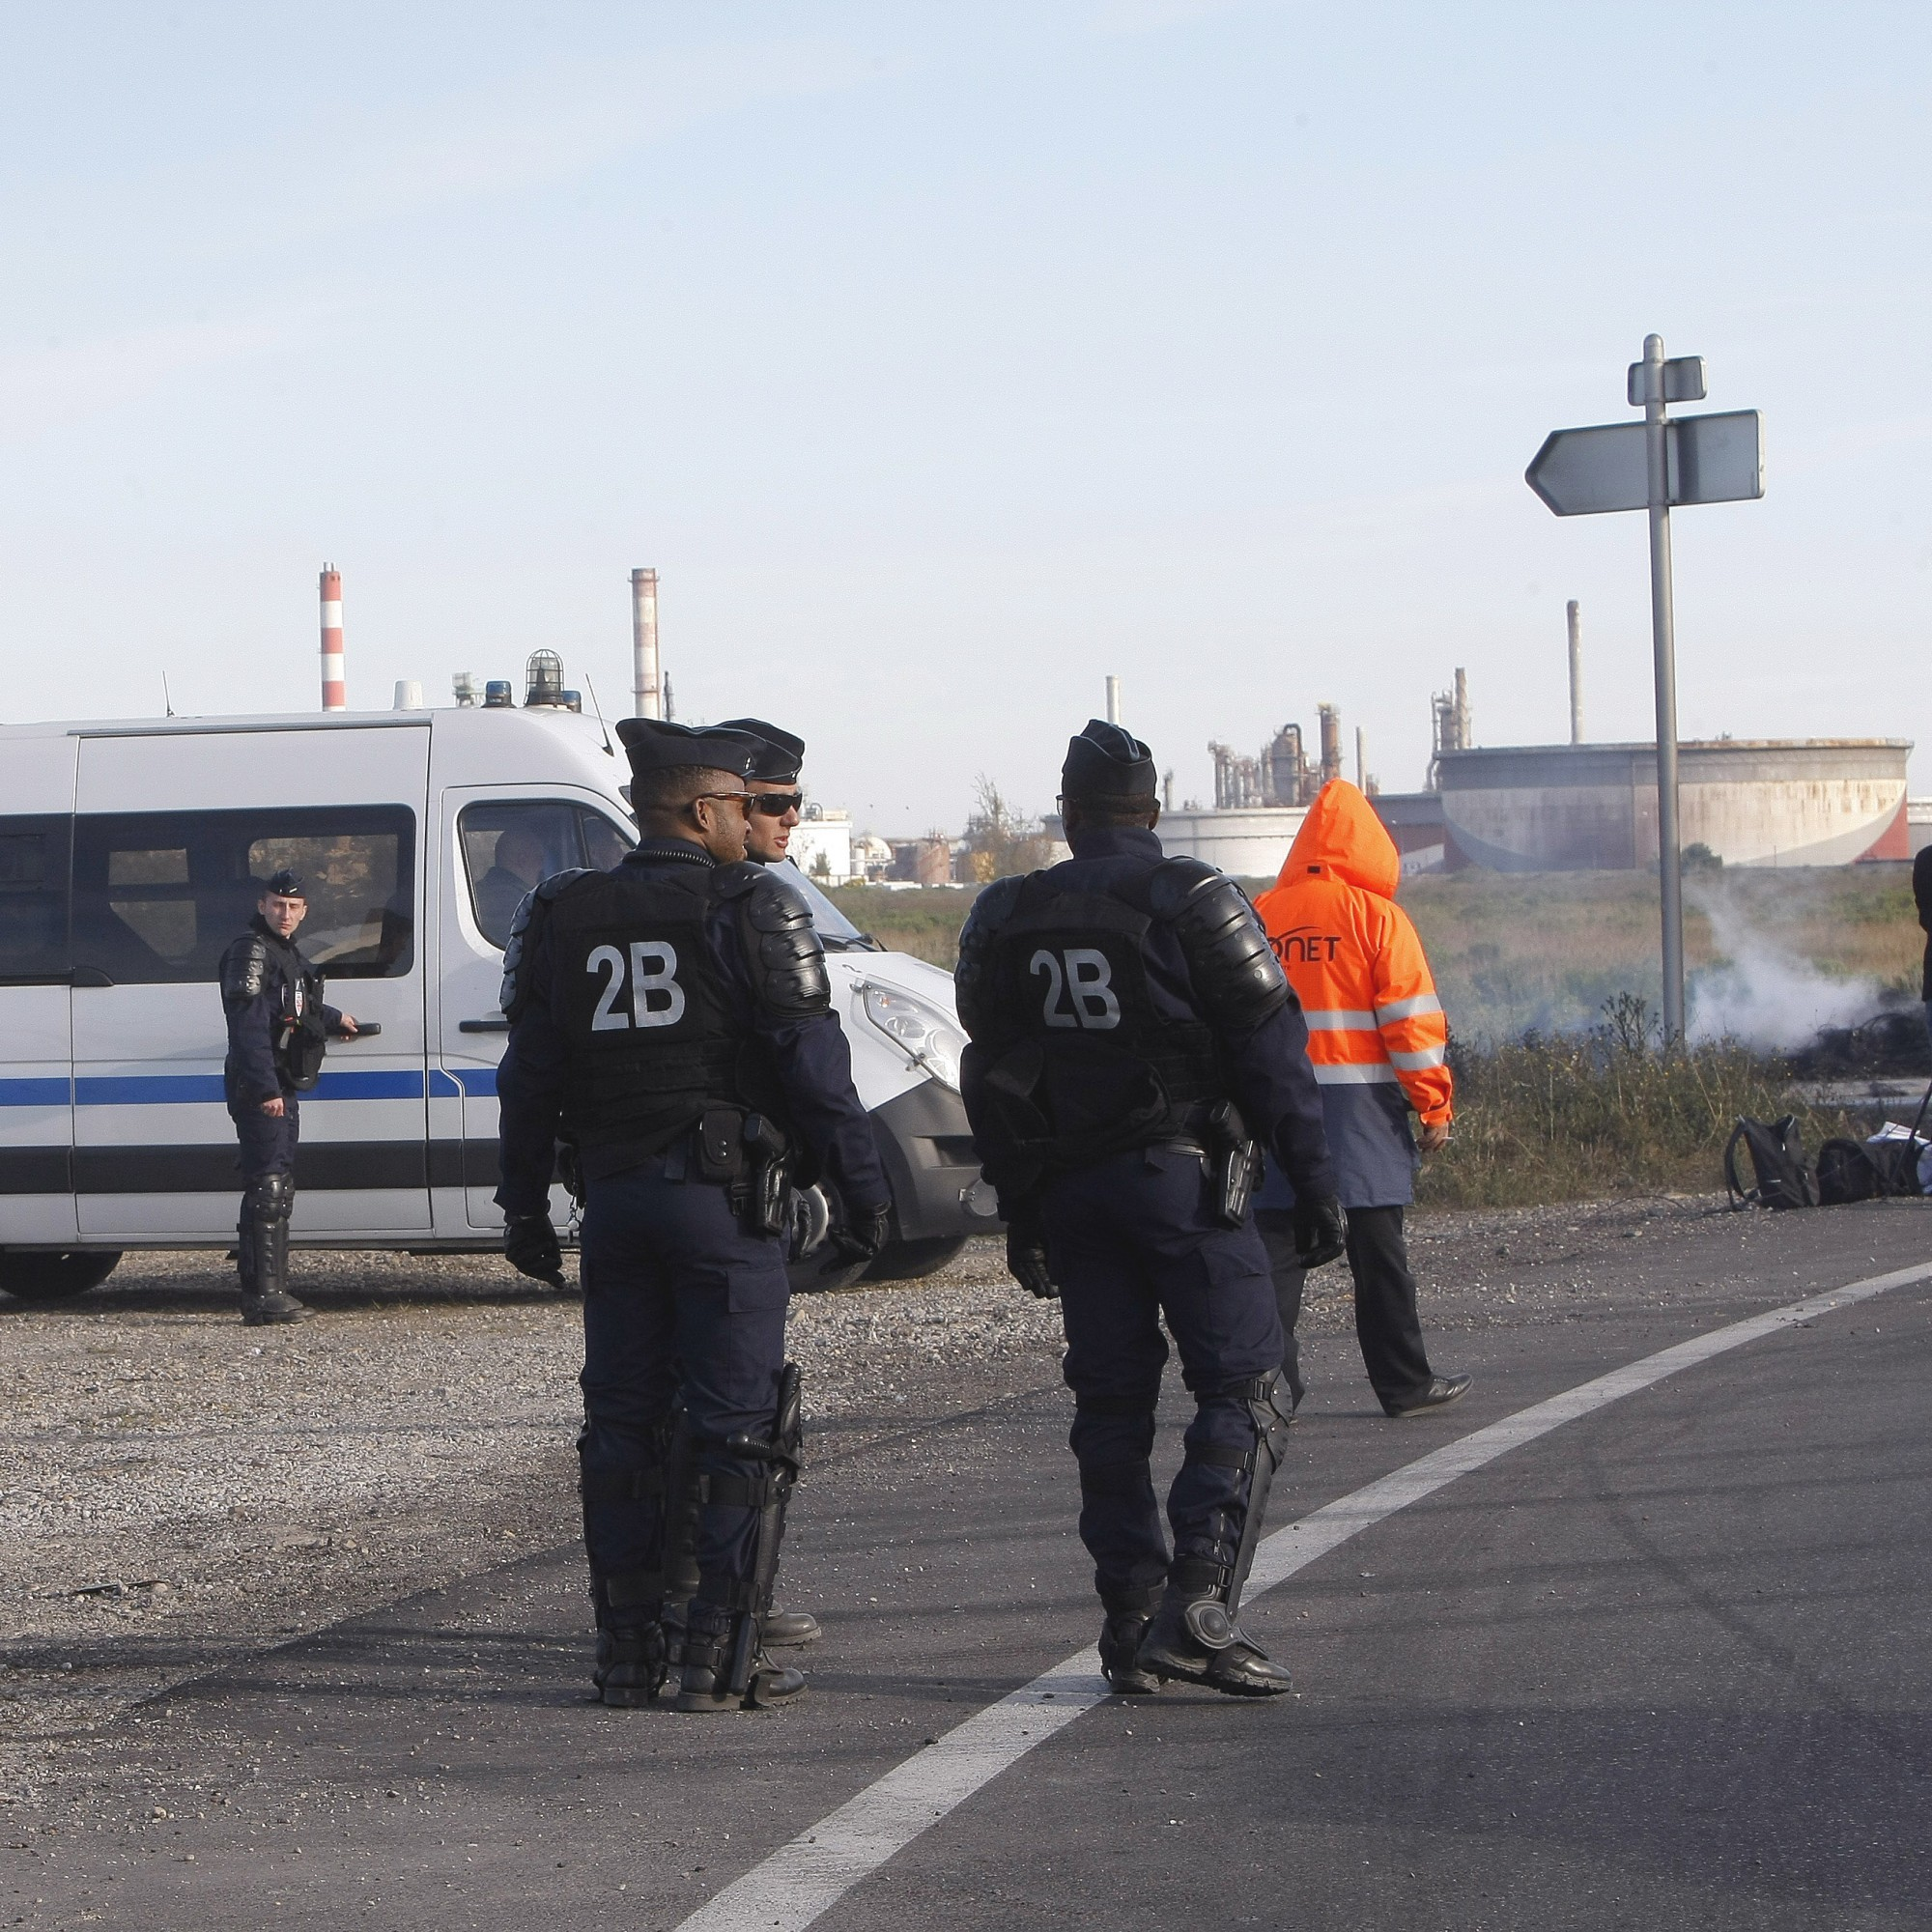 """Riot police """"liberate"""" fuel depot after days of protests in France"""